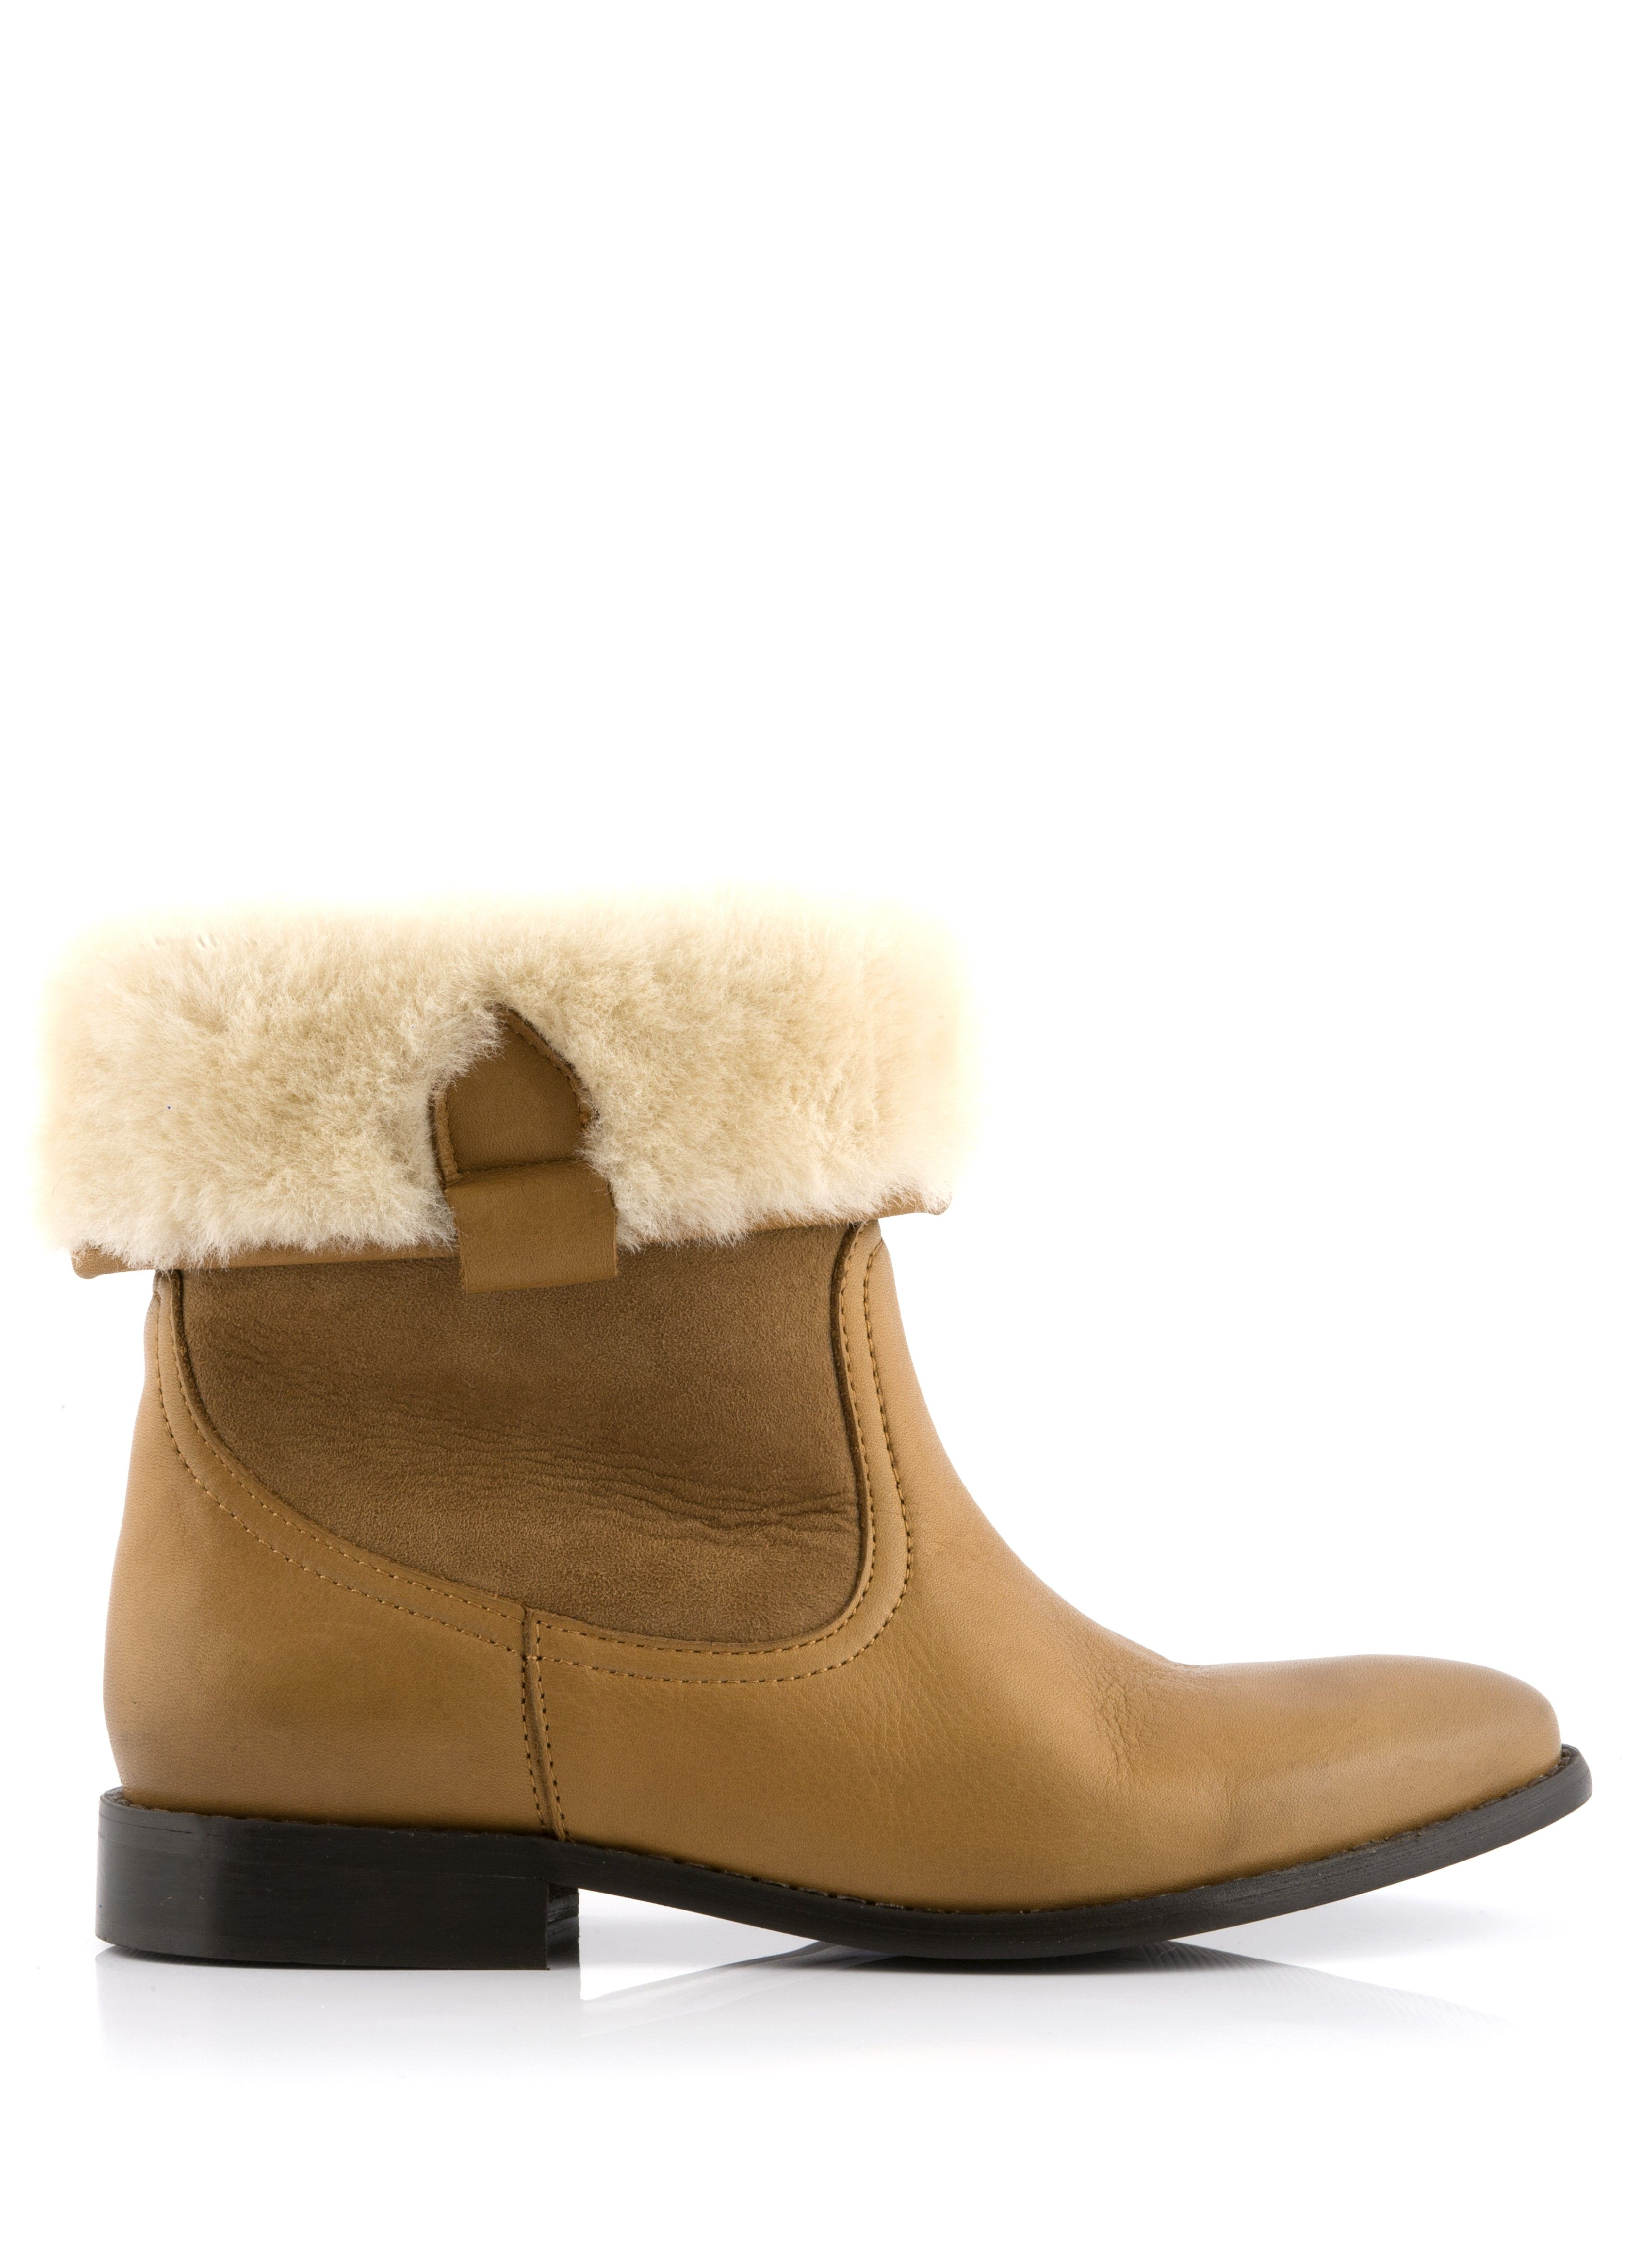 fc2cb426bf5 Boots RIVOLI Camel - Bottines - CHAUSSURES FEMME - FEMME